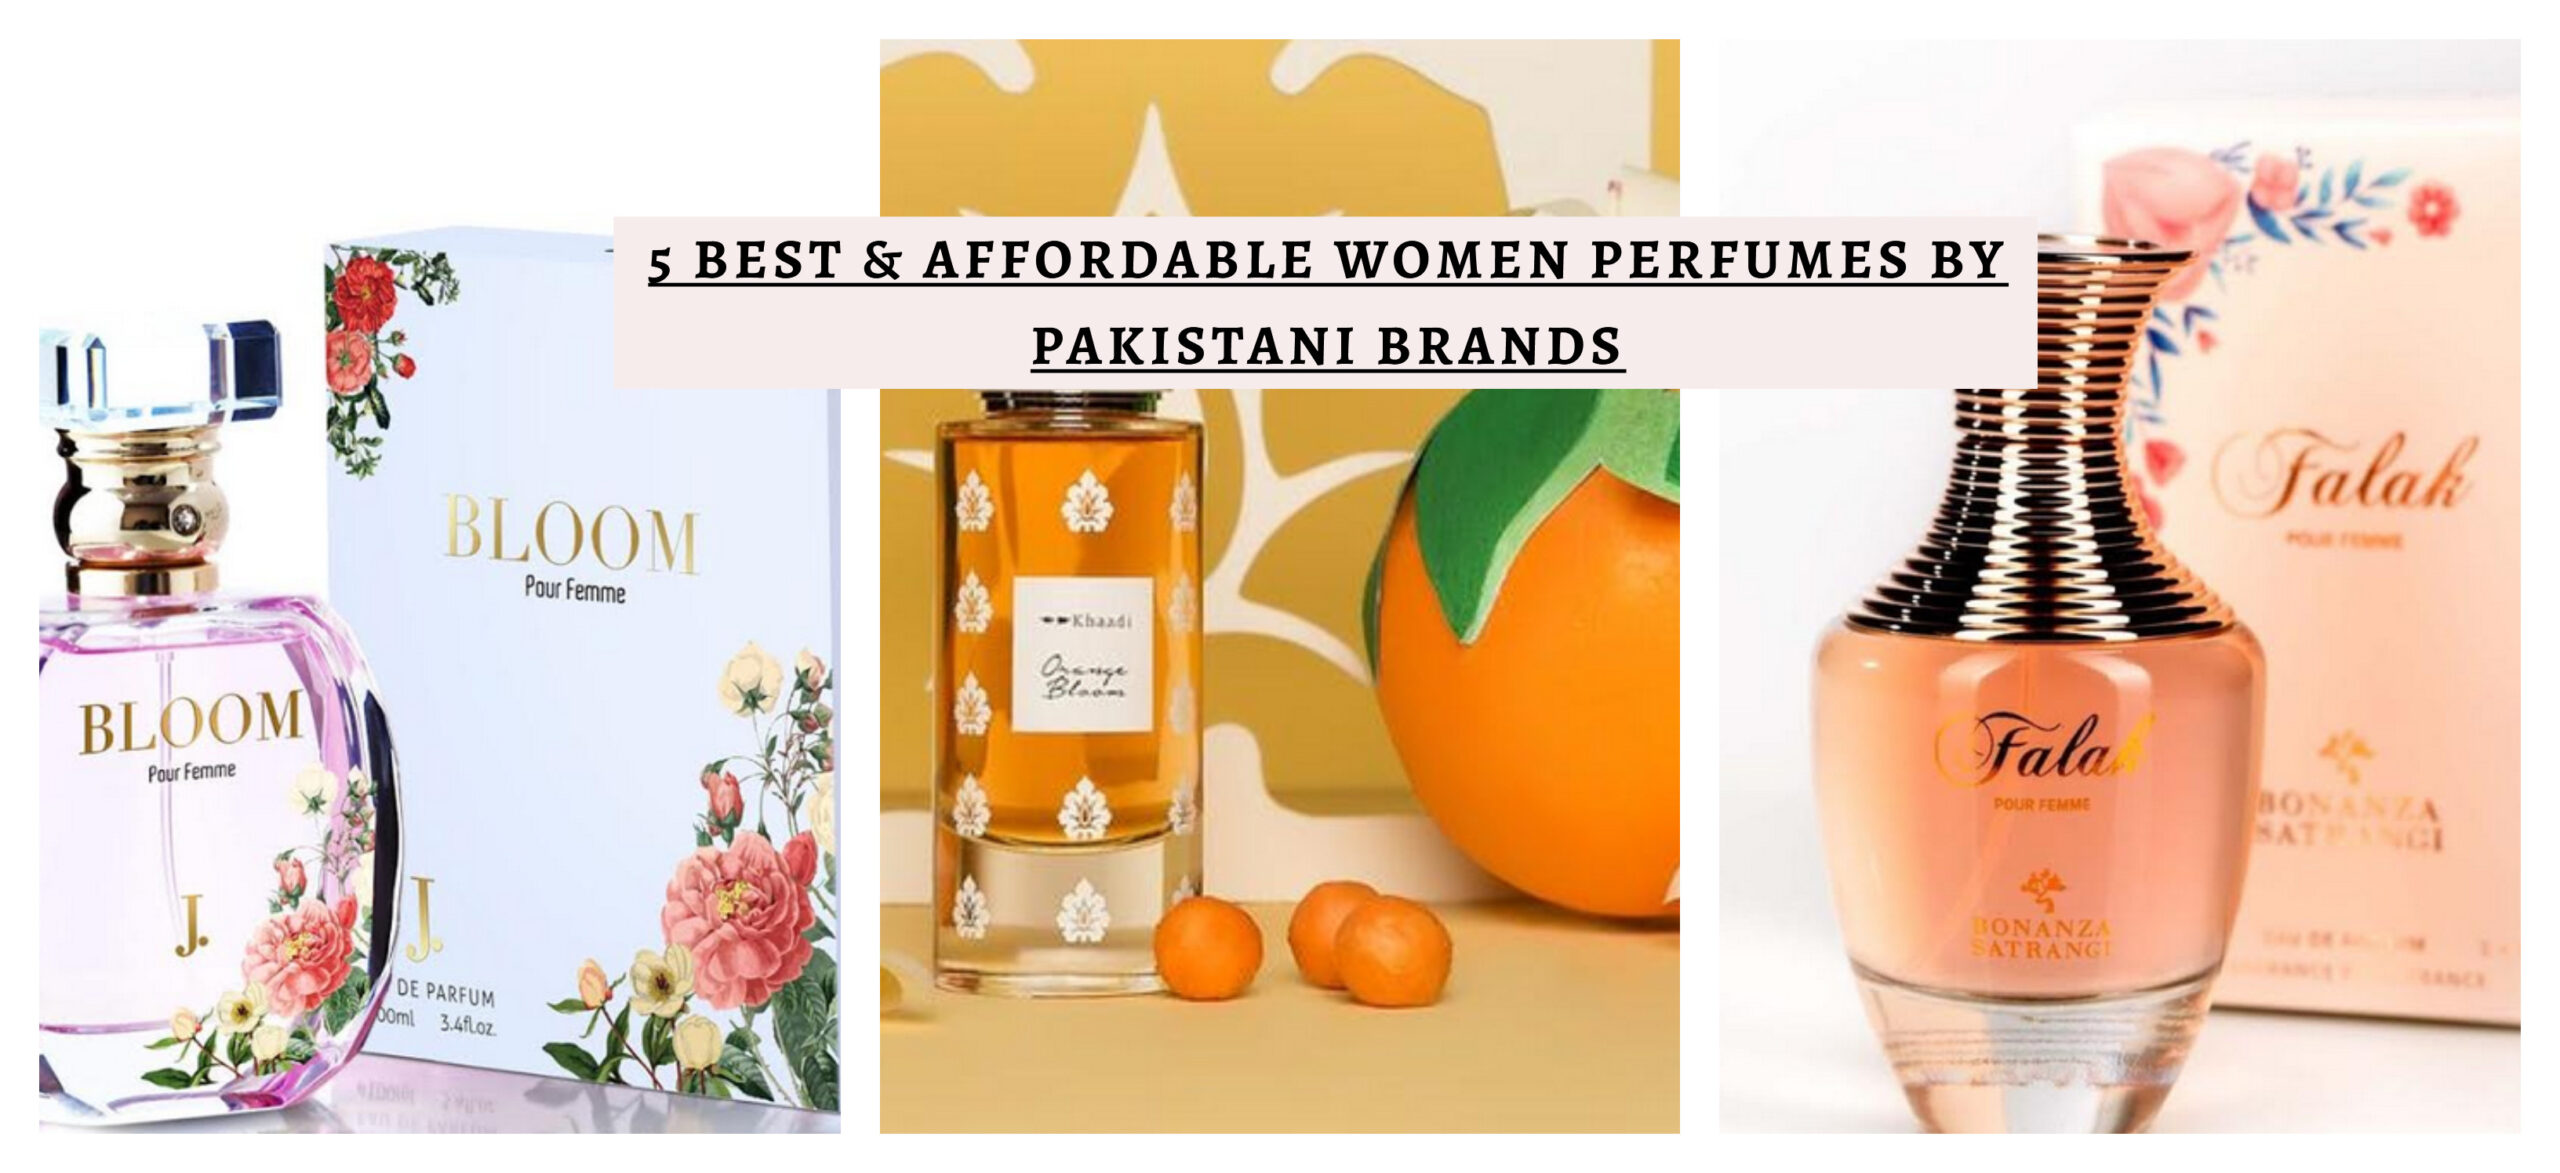 5 BEST & AFFORDABLE WOMEN PERFUMES BY PAKISTANI BRANDS